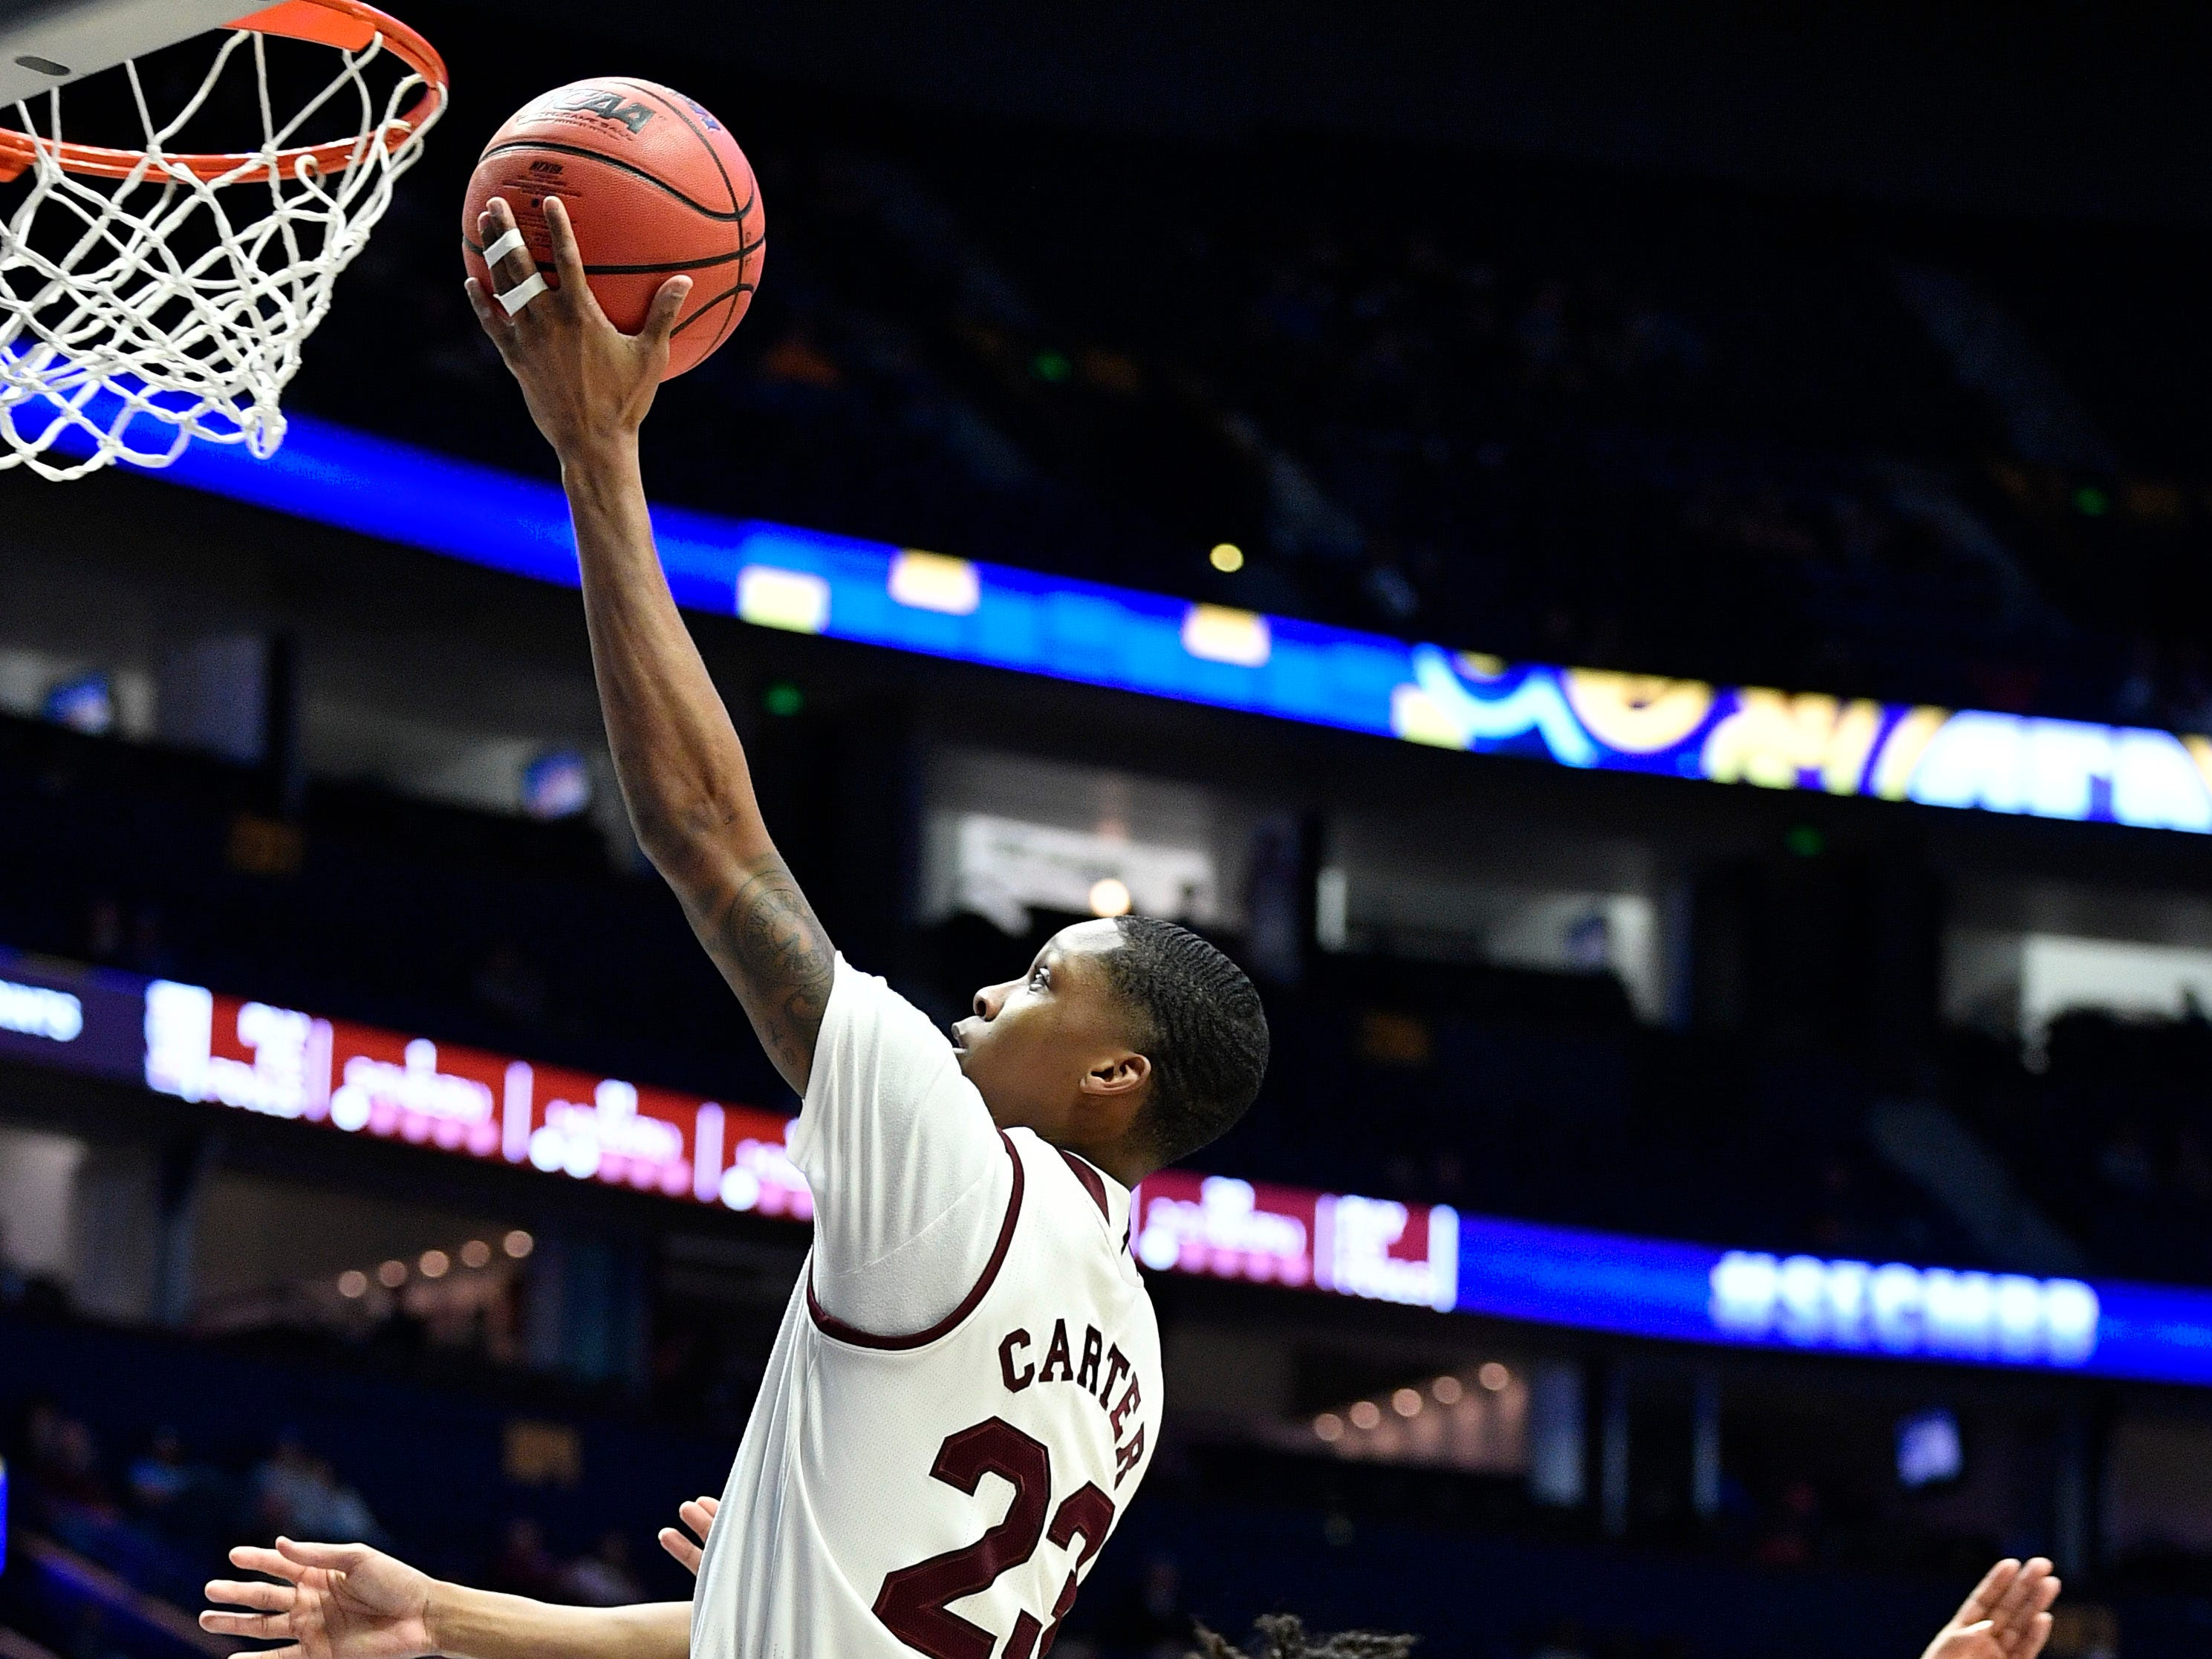 Mississippi State guard Tyson Carter (23) goes in for a shot during the second half of the SEC Men's Basketball Tournament game at Bridgestone Arena in Nashville, Tenn., Thursday, March 14, 2019.